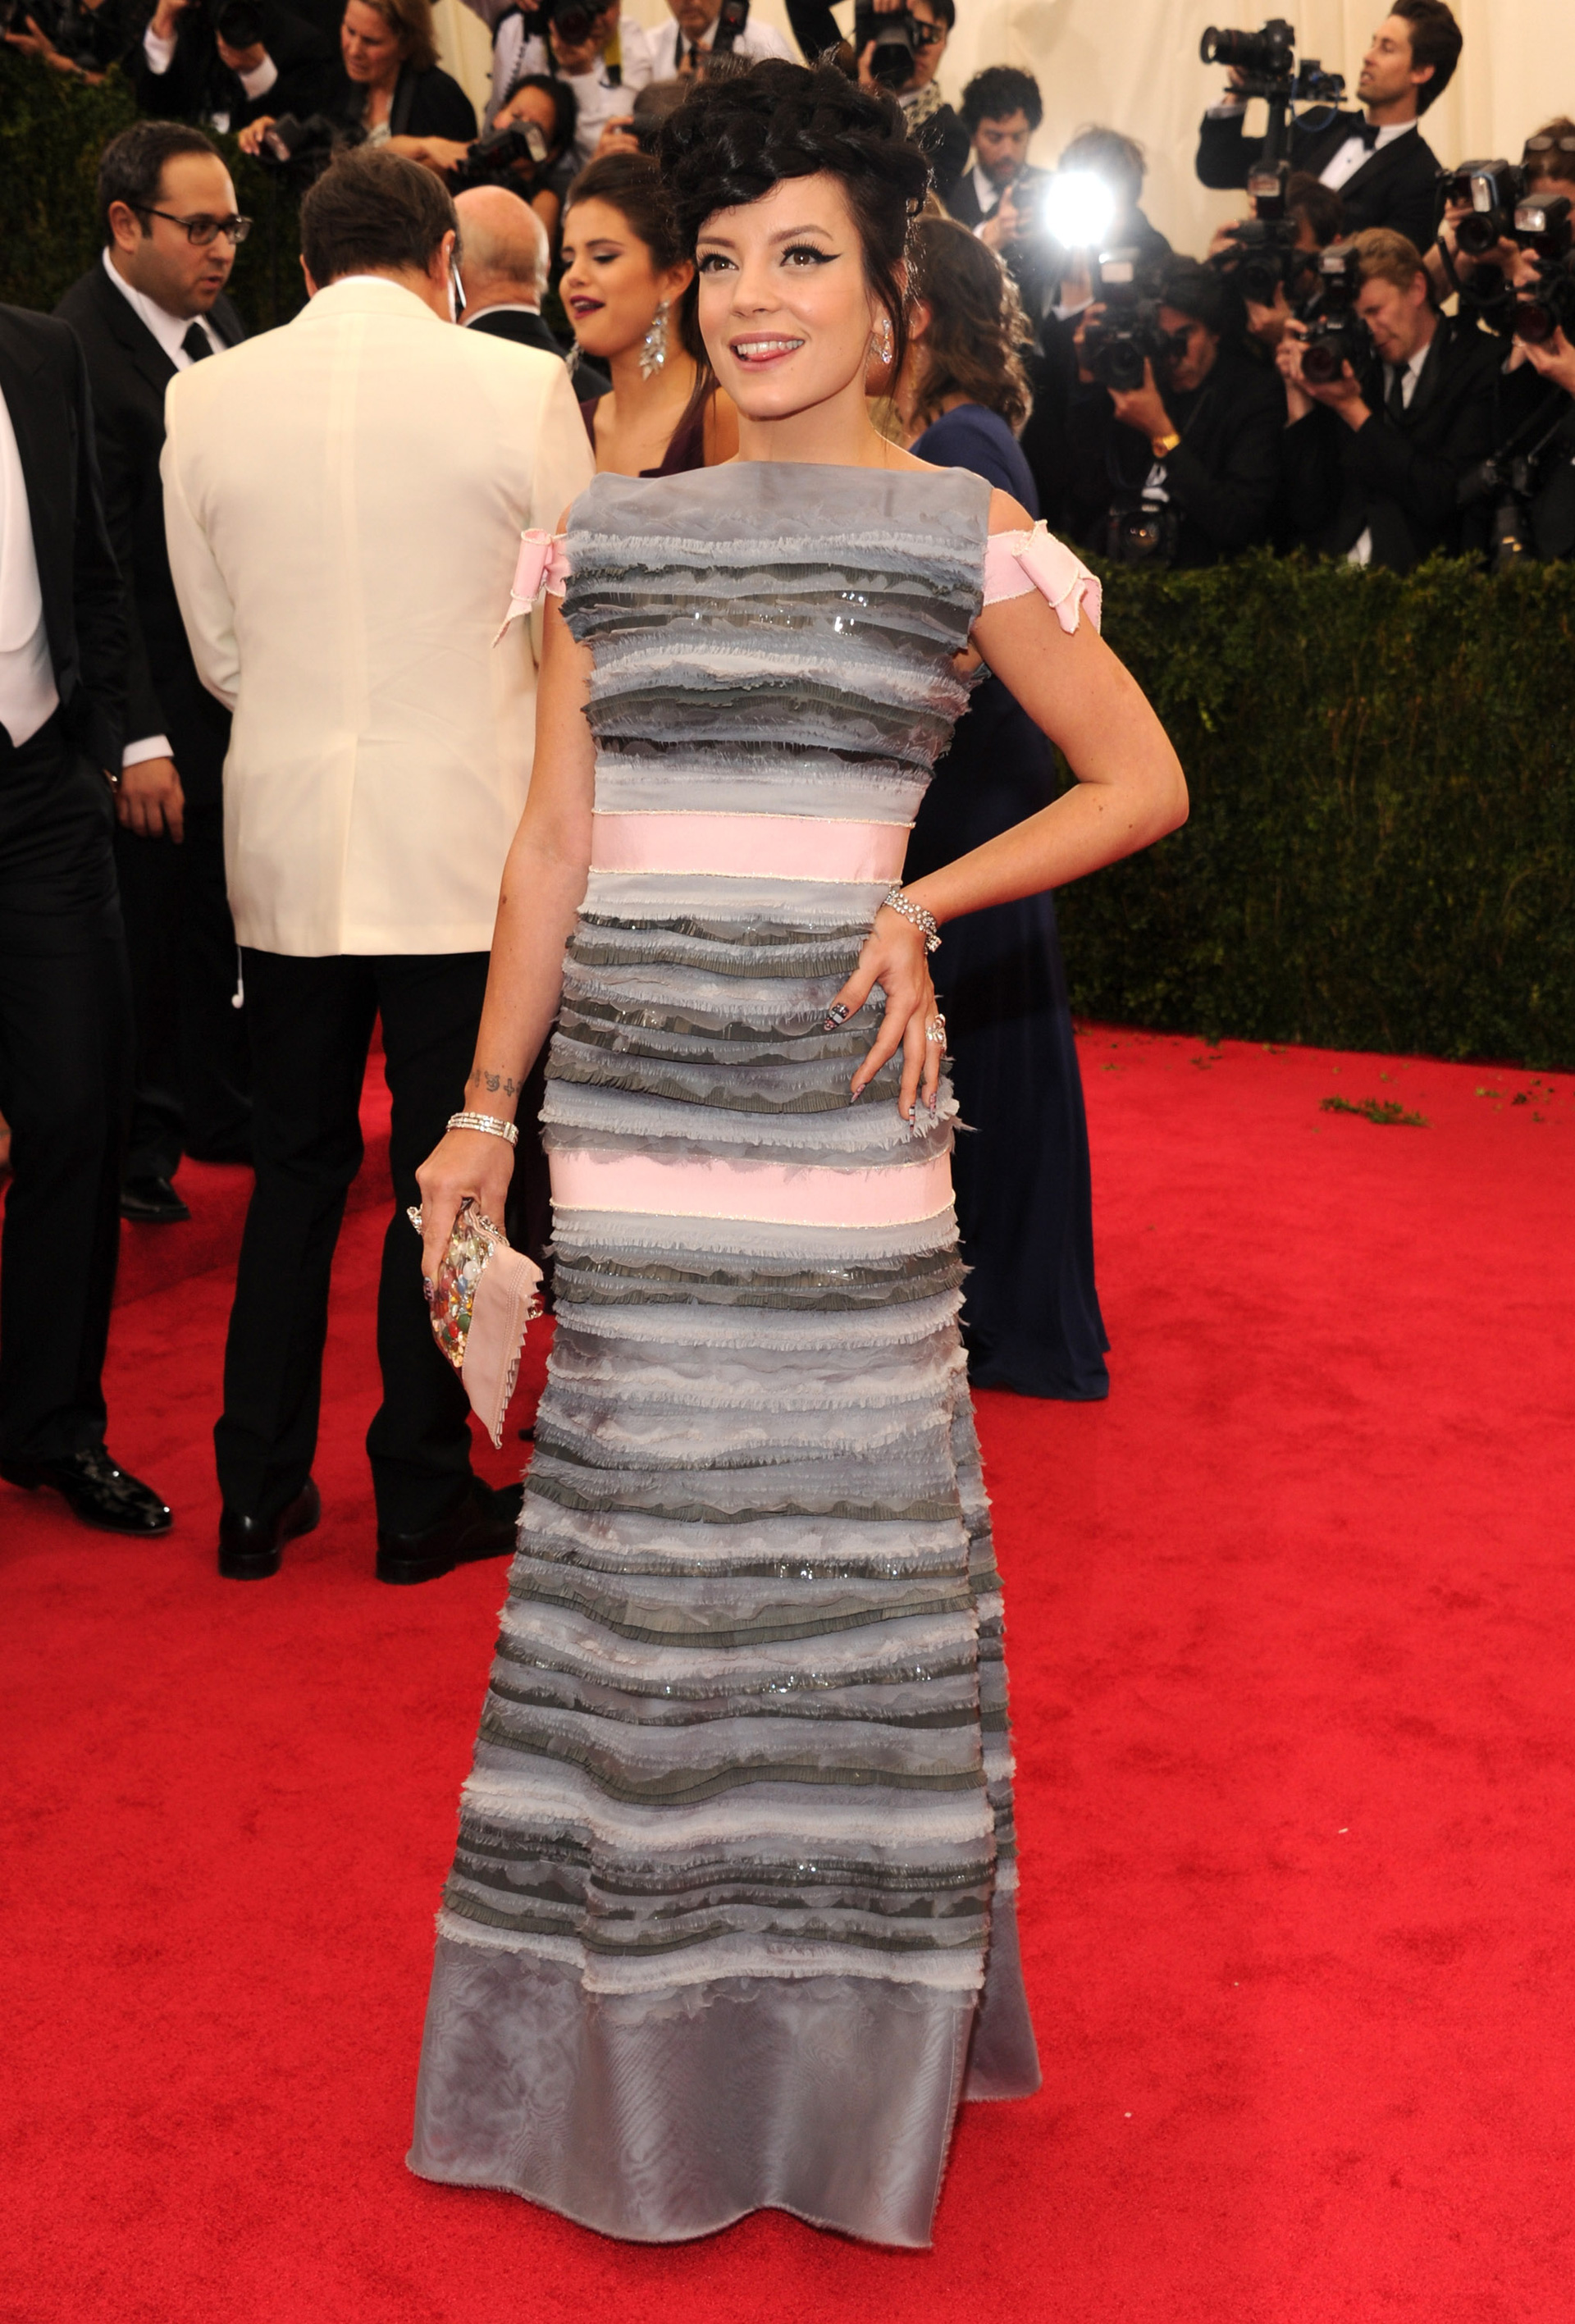 Lily Allen at the 2014 Met Gala